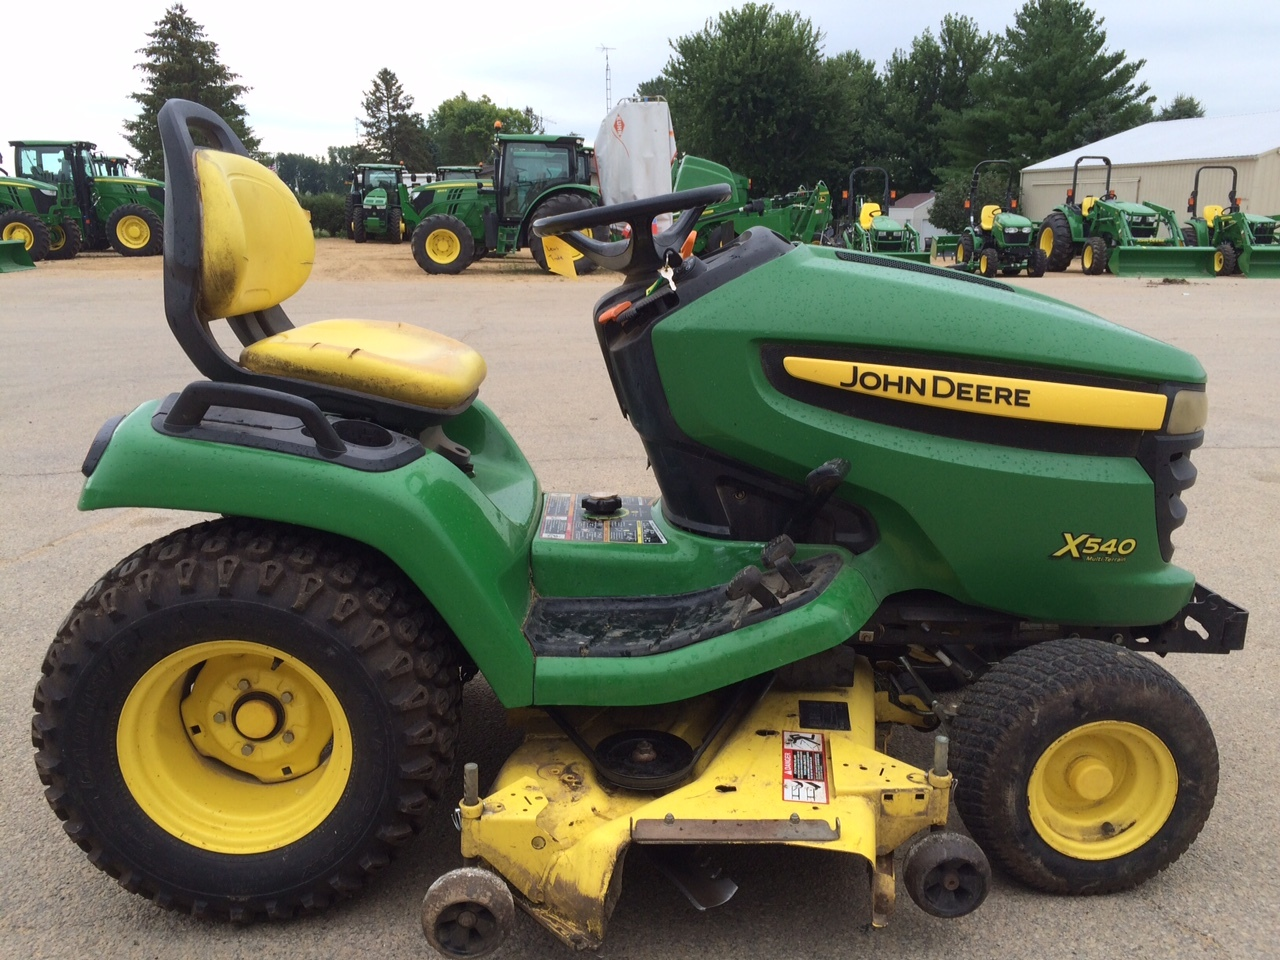 John deere x540 lawn garden tractors for sale 49468 for Garden machinery for sale